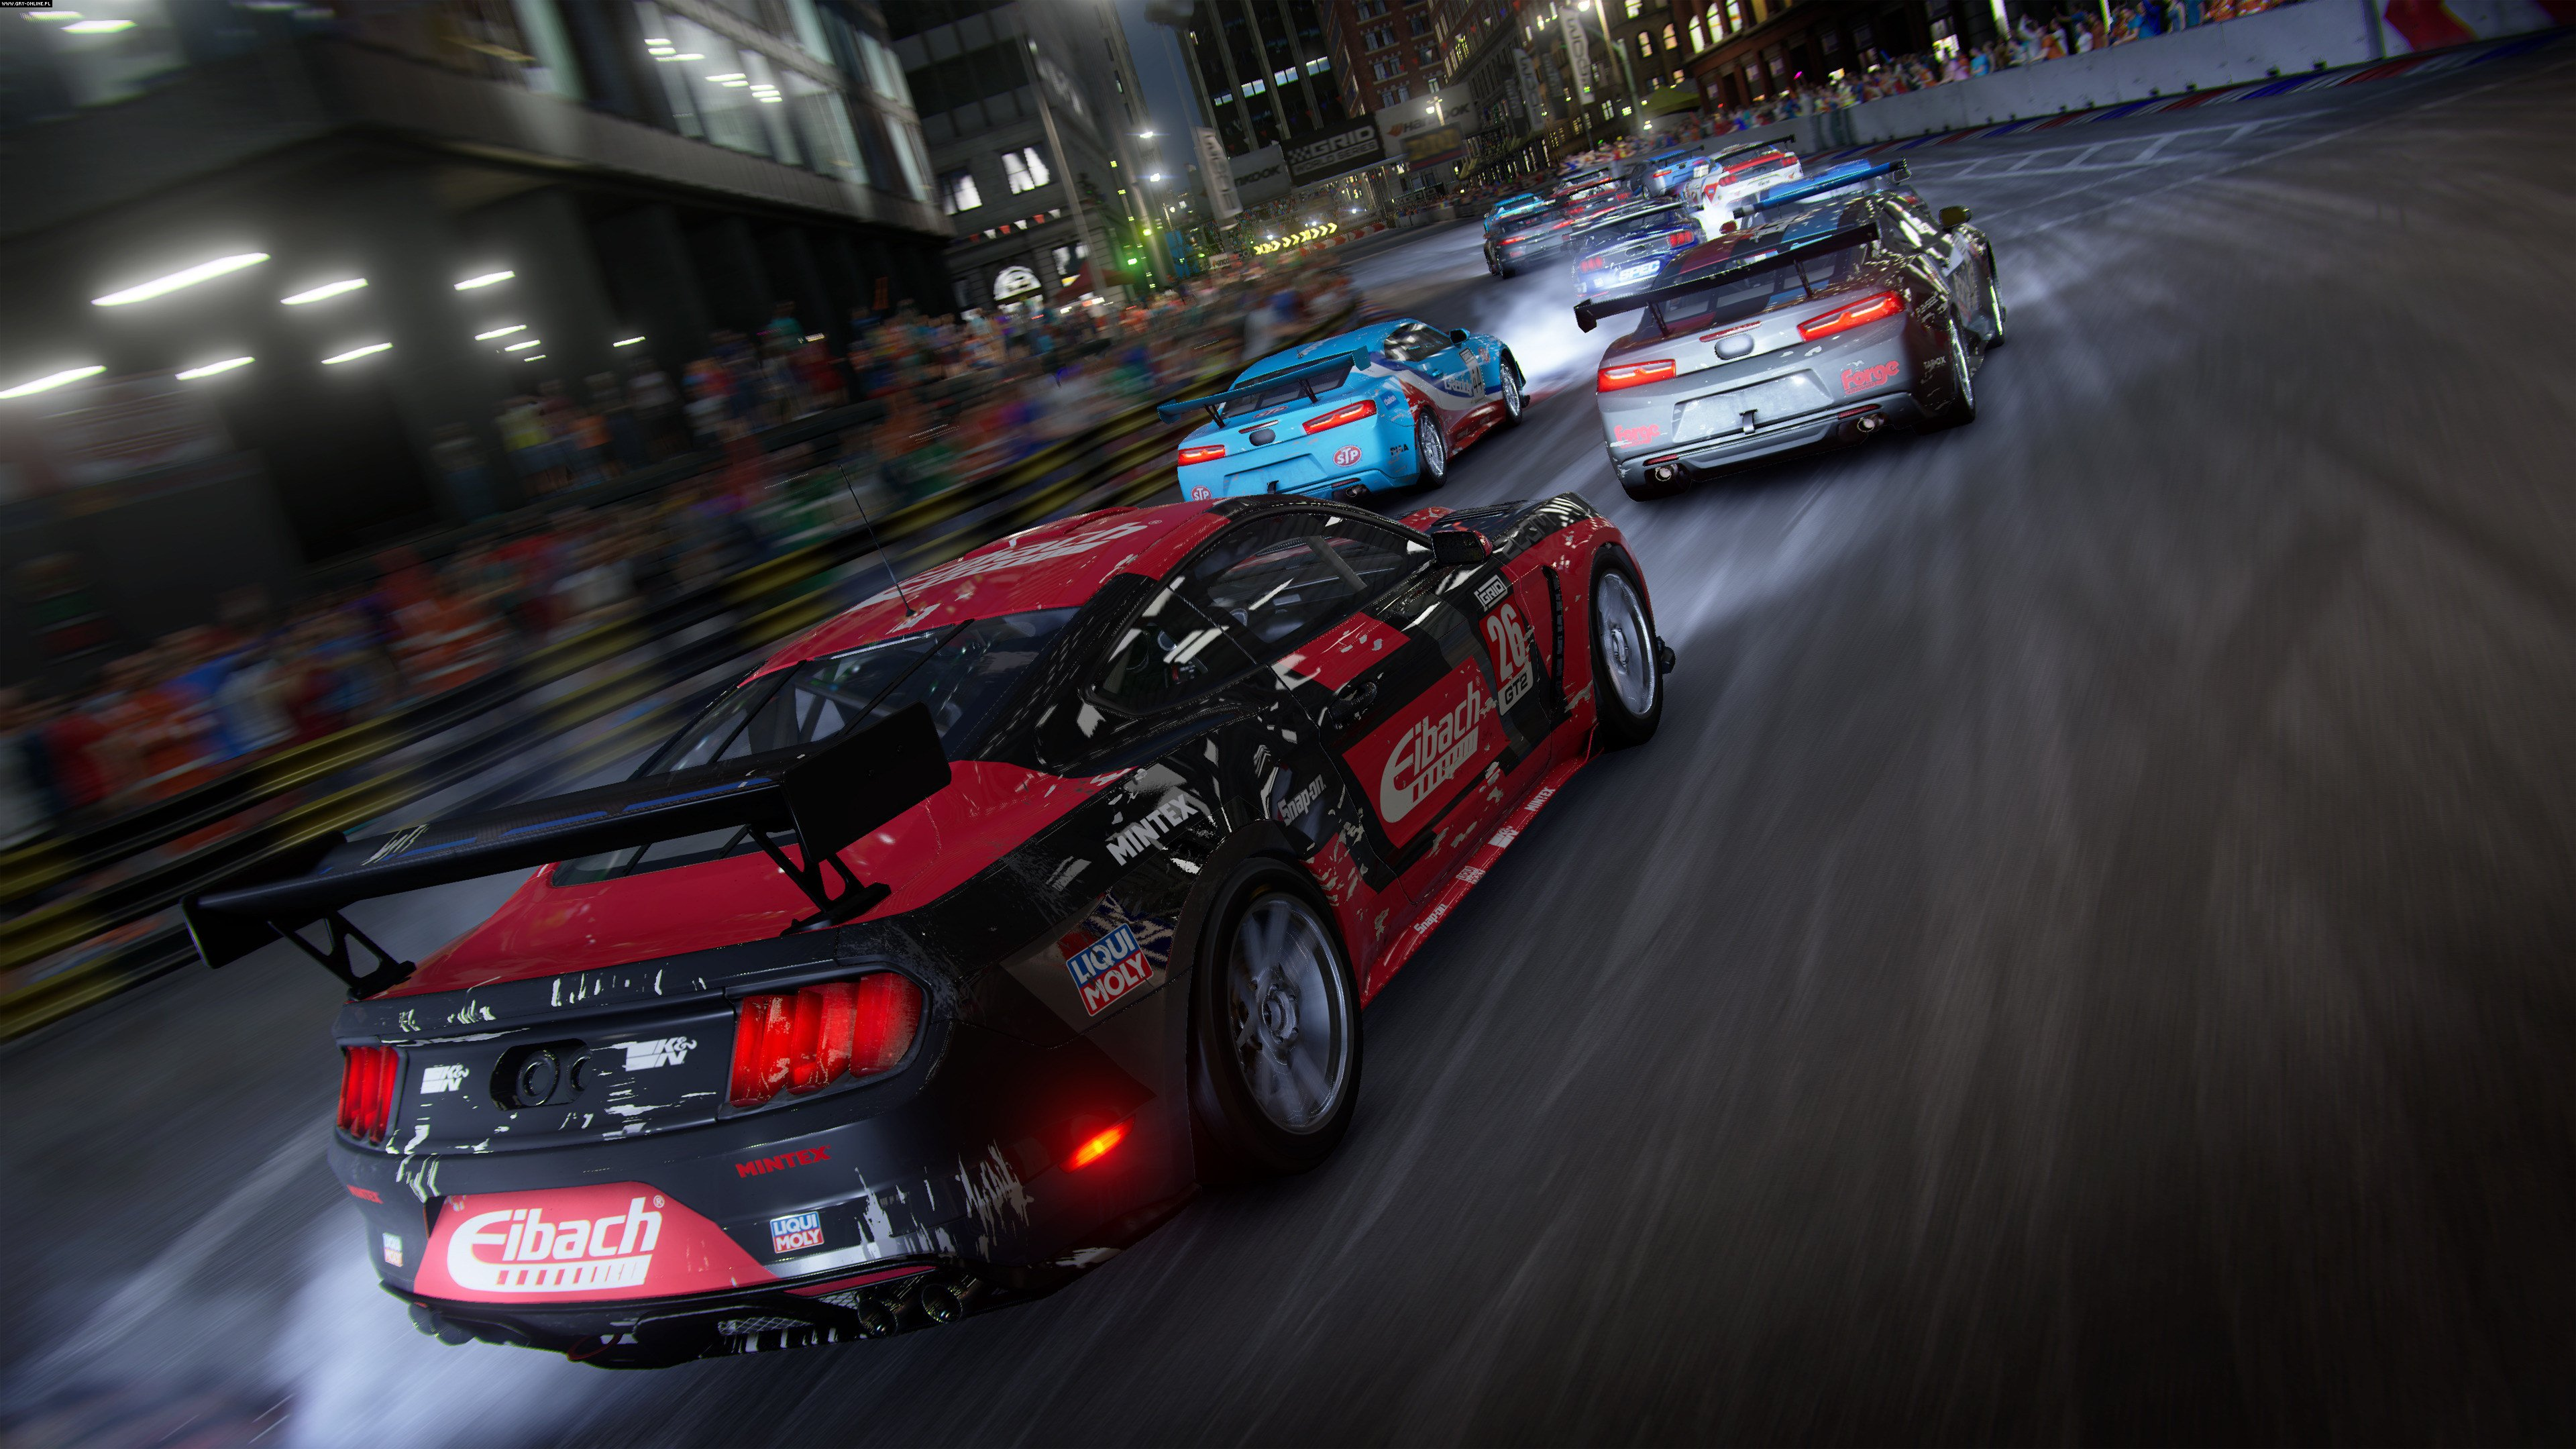 GRID PC, PS4, XONE Games Image 15/49, Codemasters Software